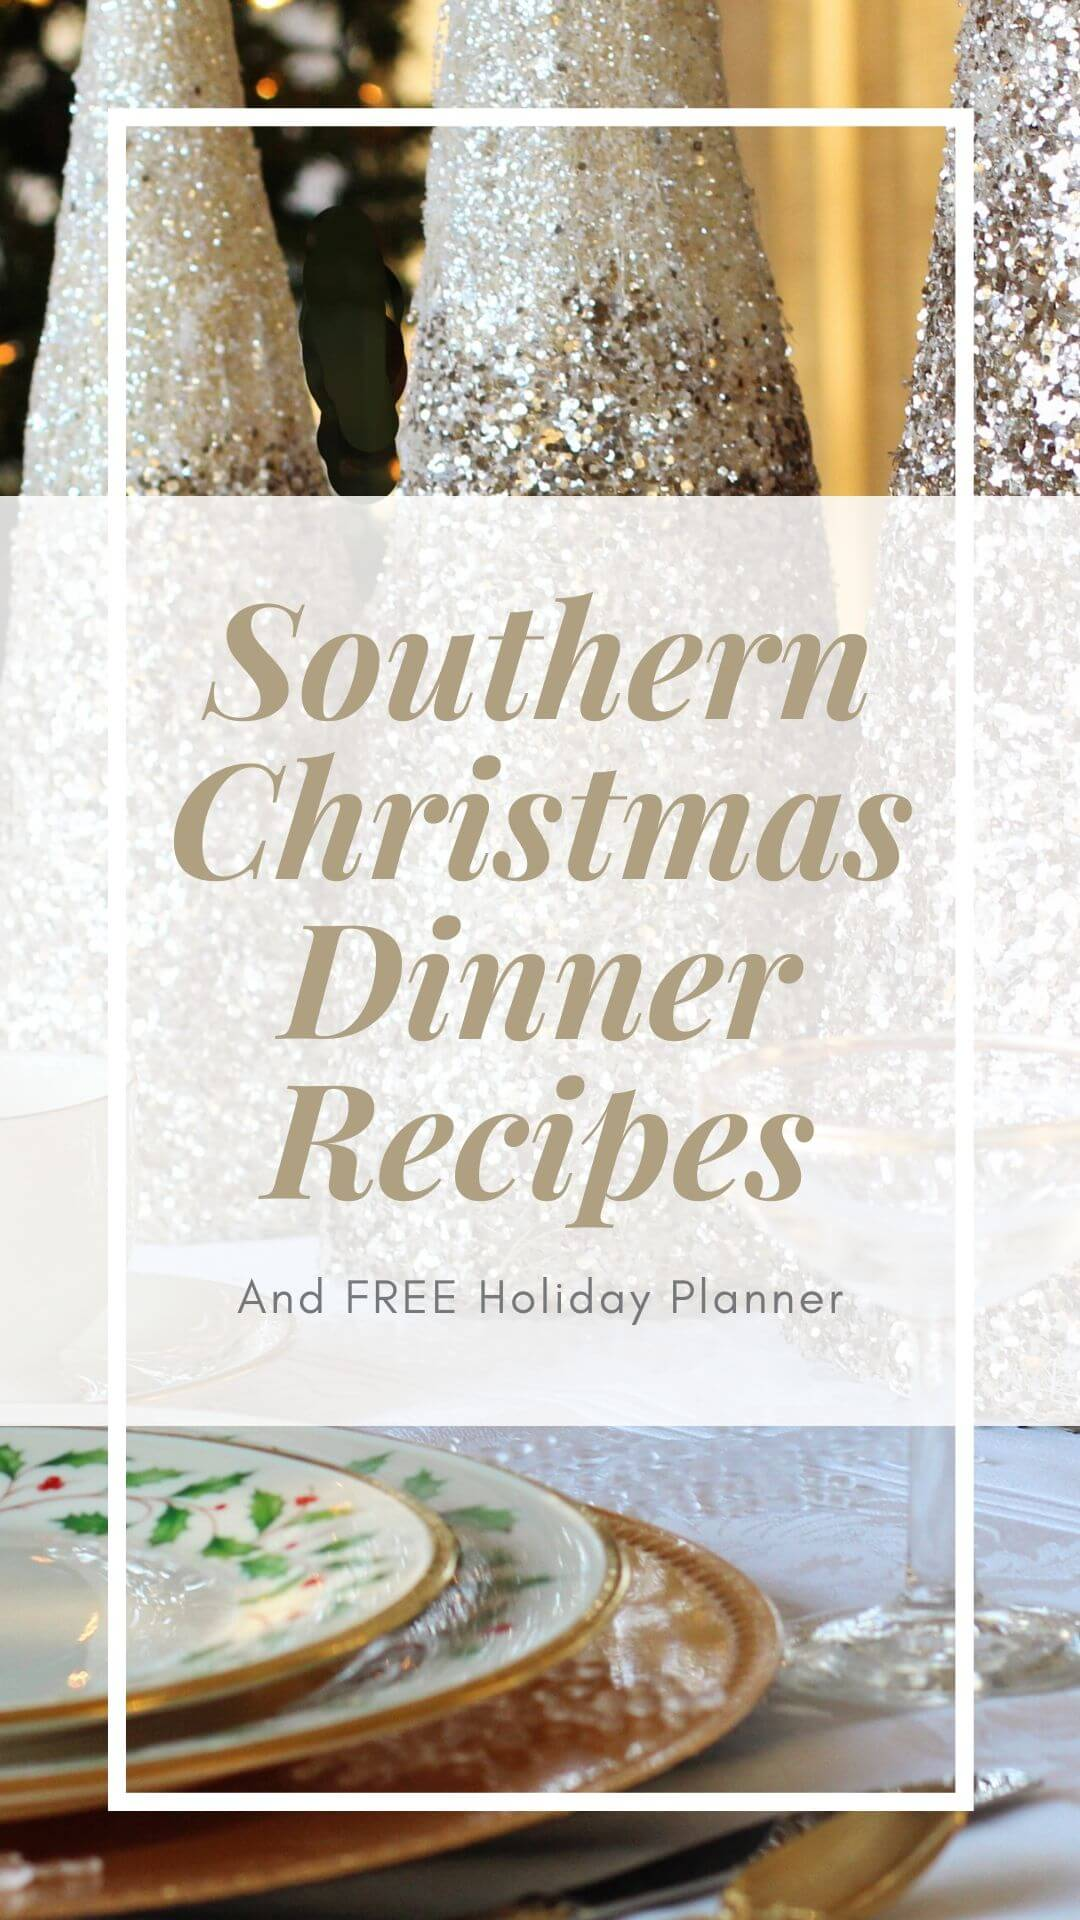 Post full of classic Southern Christmas recipes